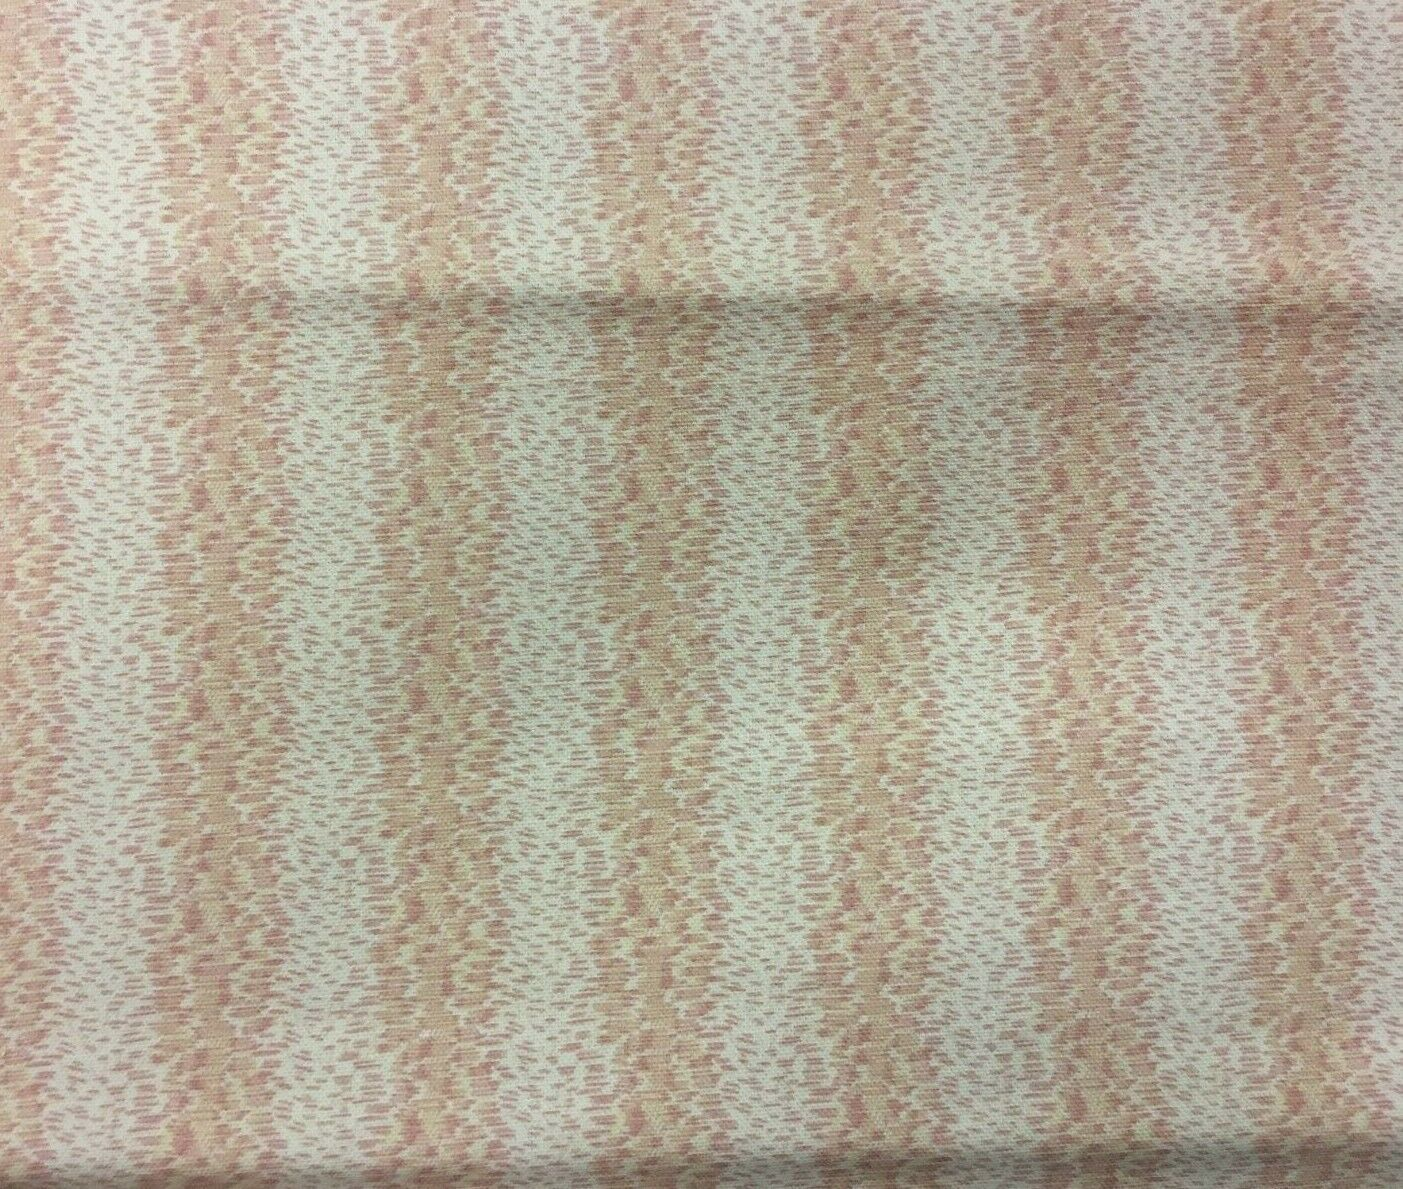 Braemore Pink and Cream Abstract Stripe Upholstery Drapery Fabric 3.25 yds